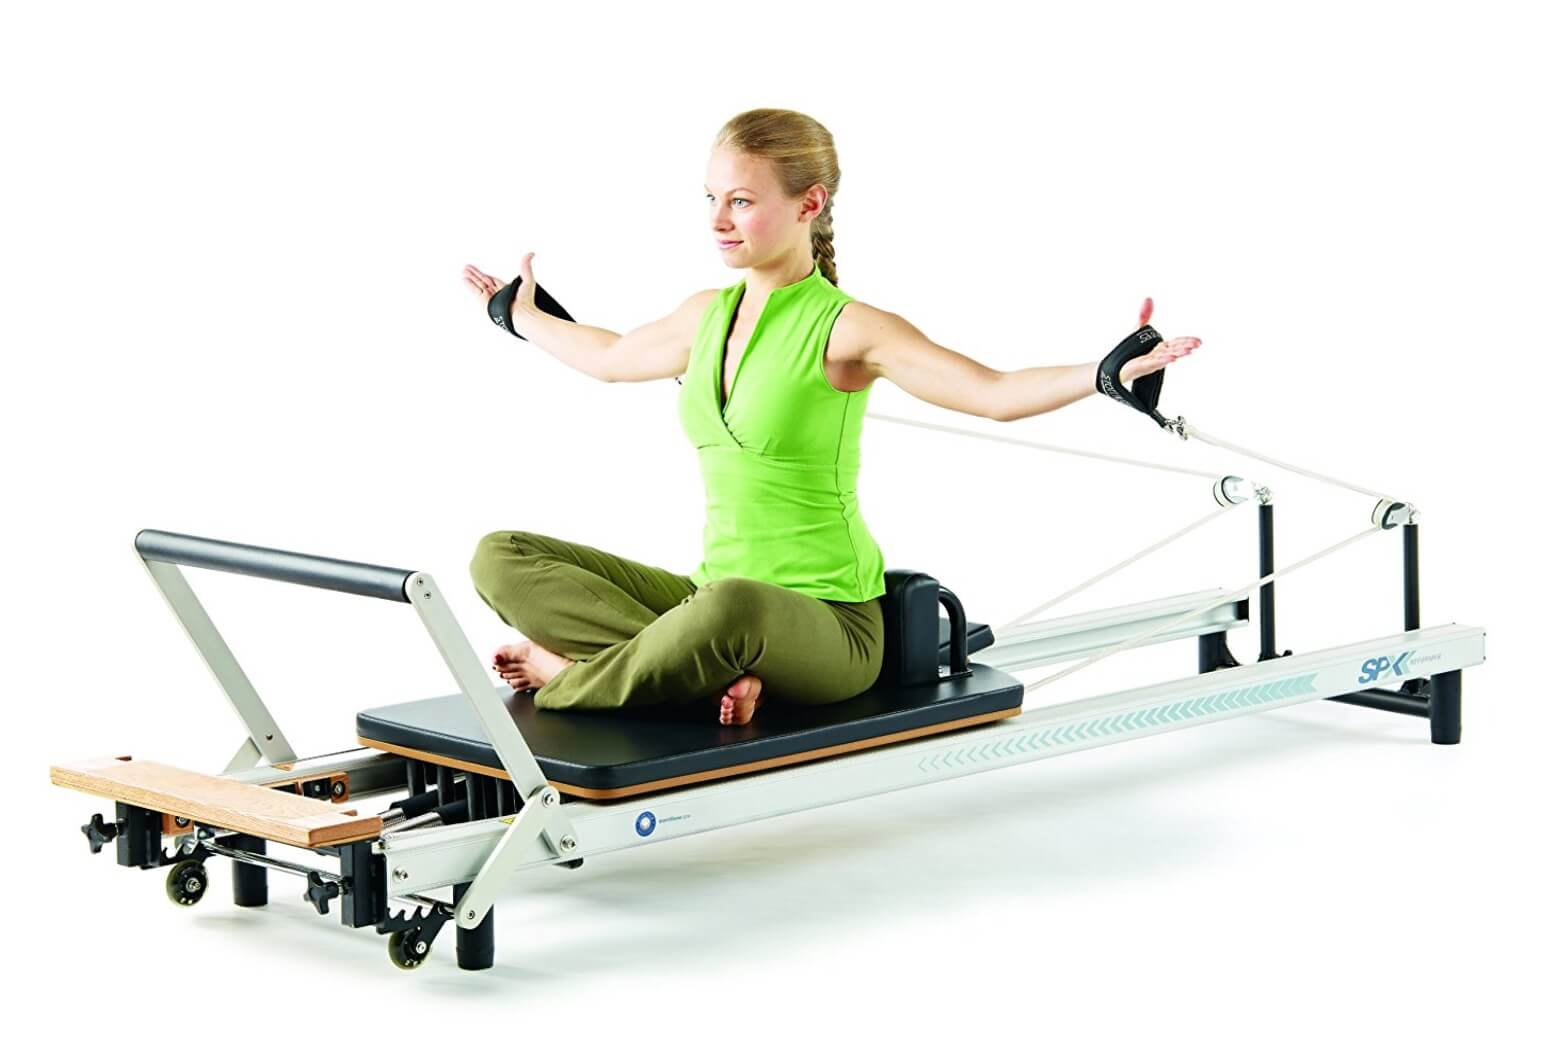 STOTT PILATES MERRITHEW At Home SPX Reformer review